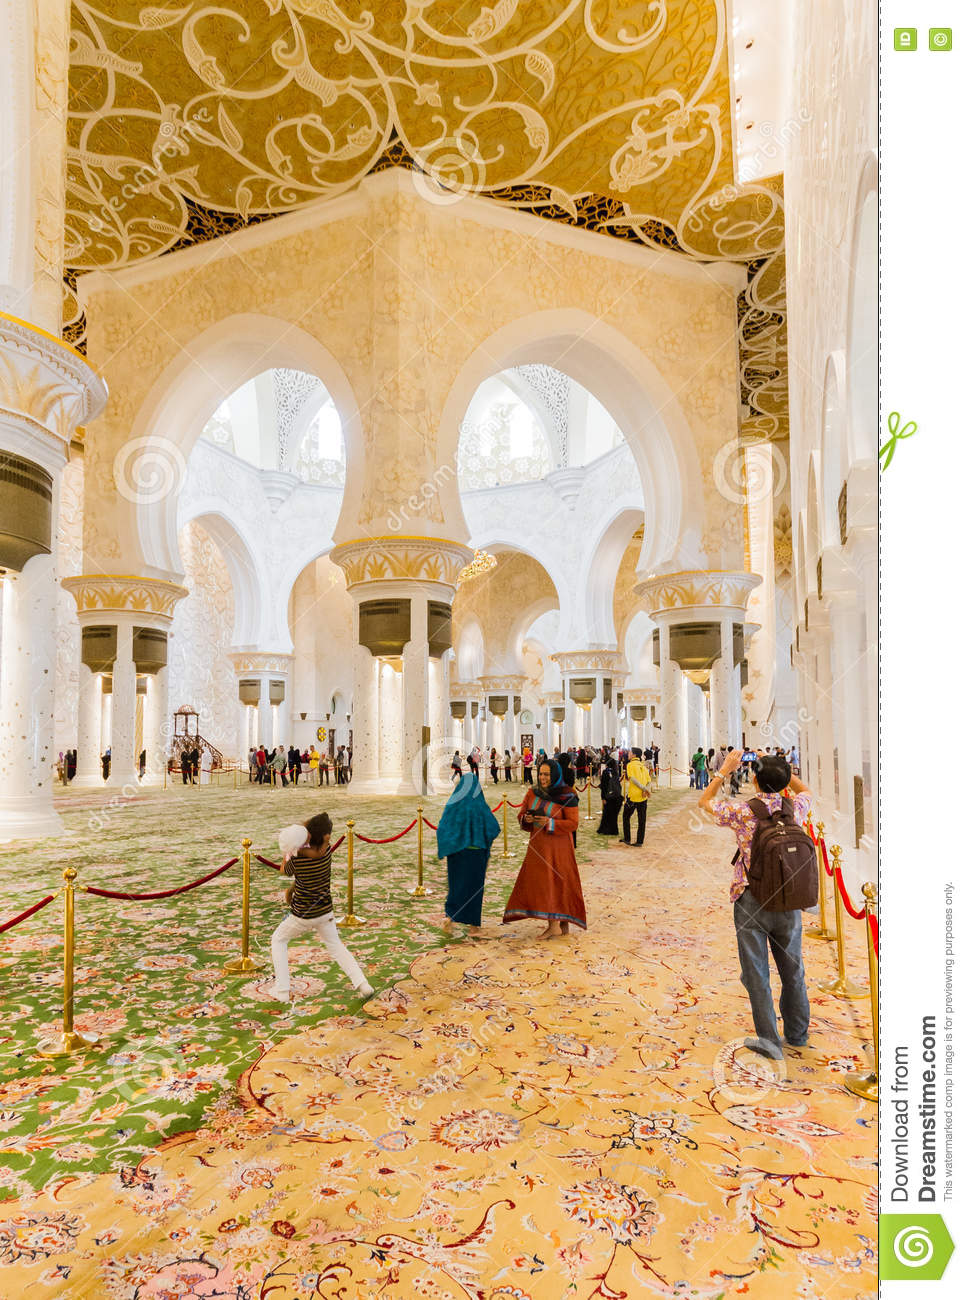 Sheikh Zayed Mosque Interior With Arabic Geometry Decoration The Great Marble Grand Mosque At Abu Dhabi Uae Editorial Photography Image Of Grand Decorated 75697222